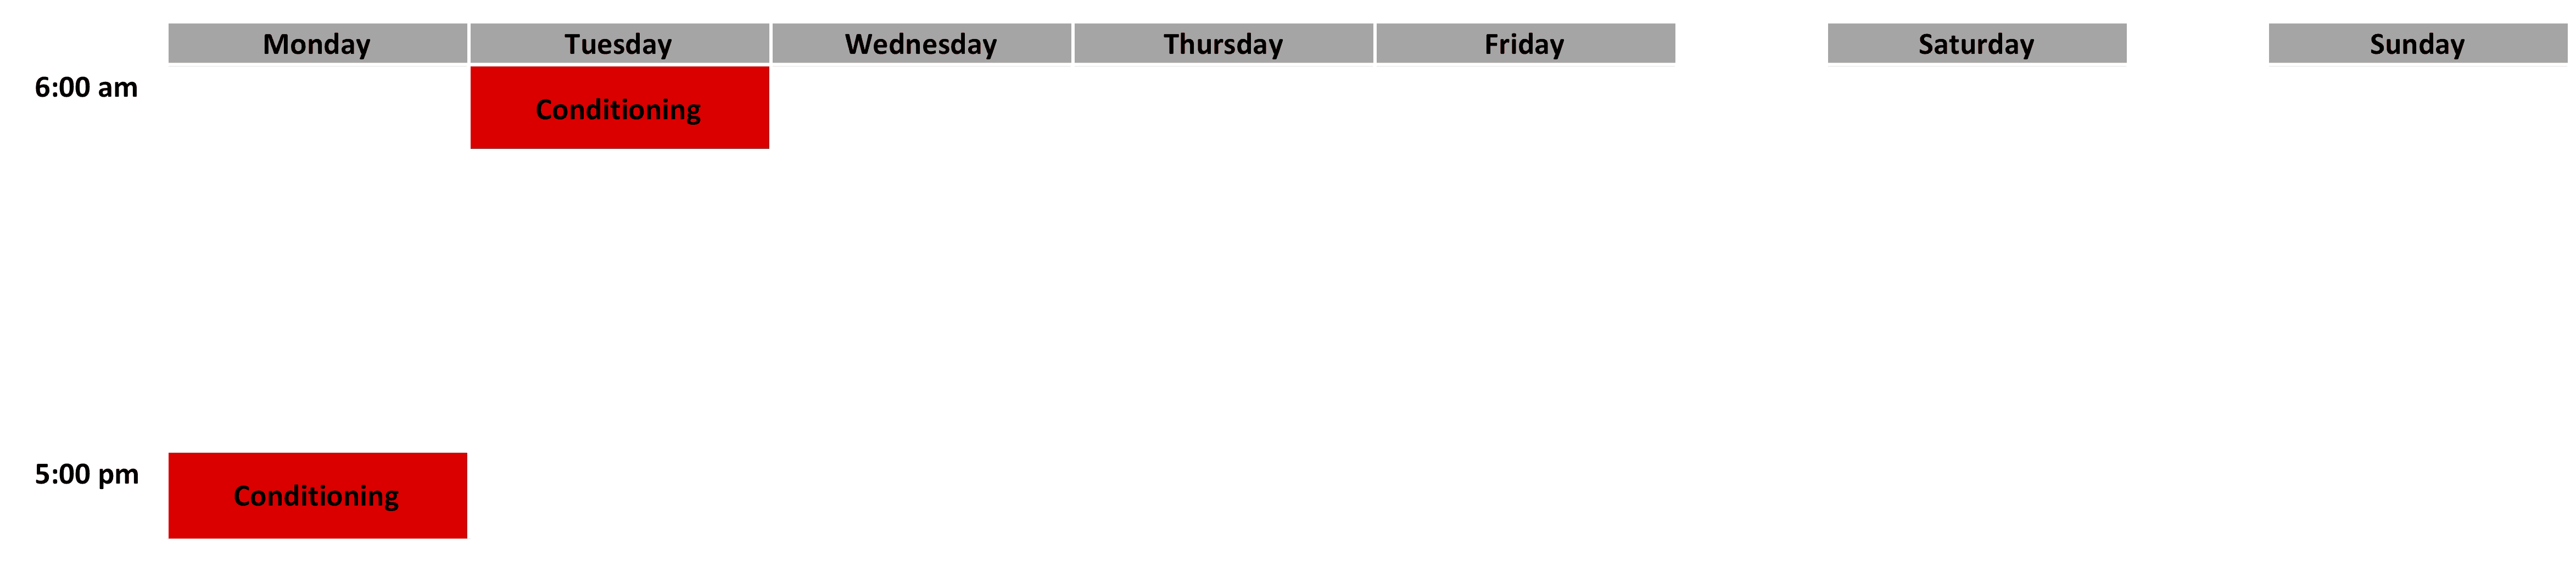 Conditioning Schedule - April 2019